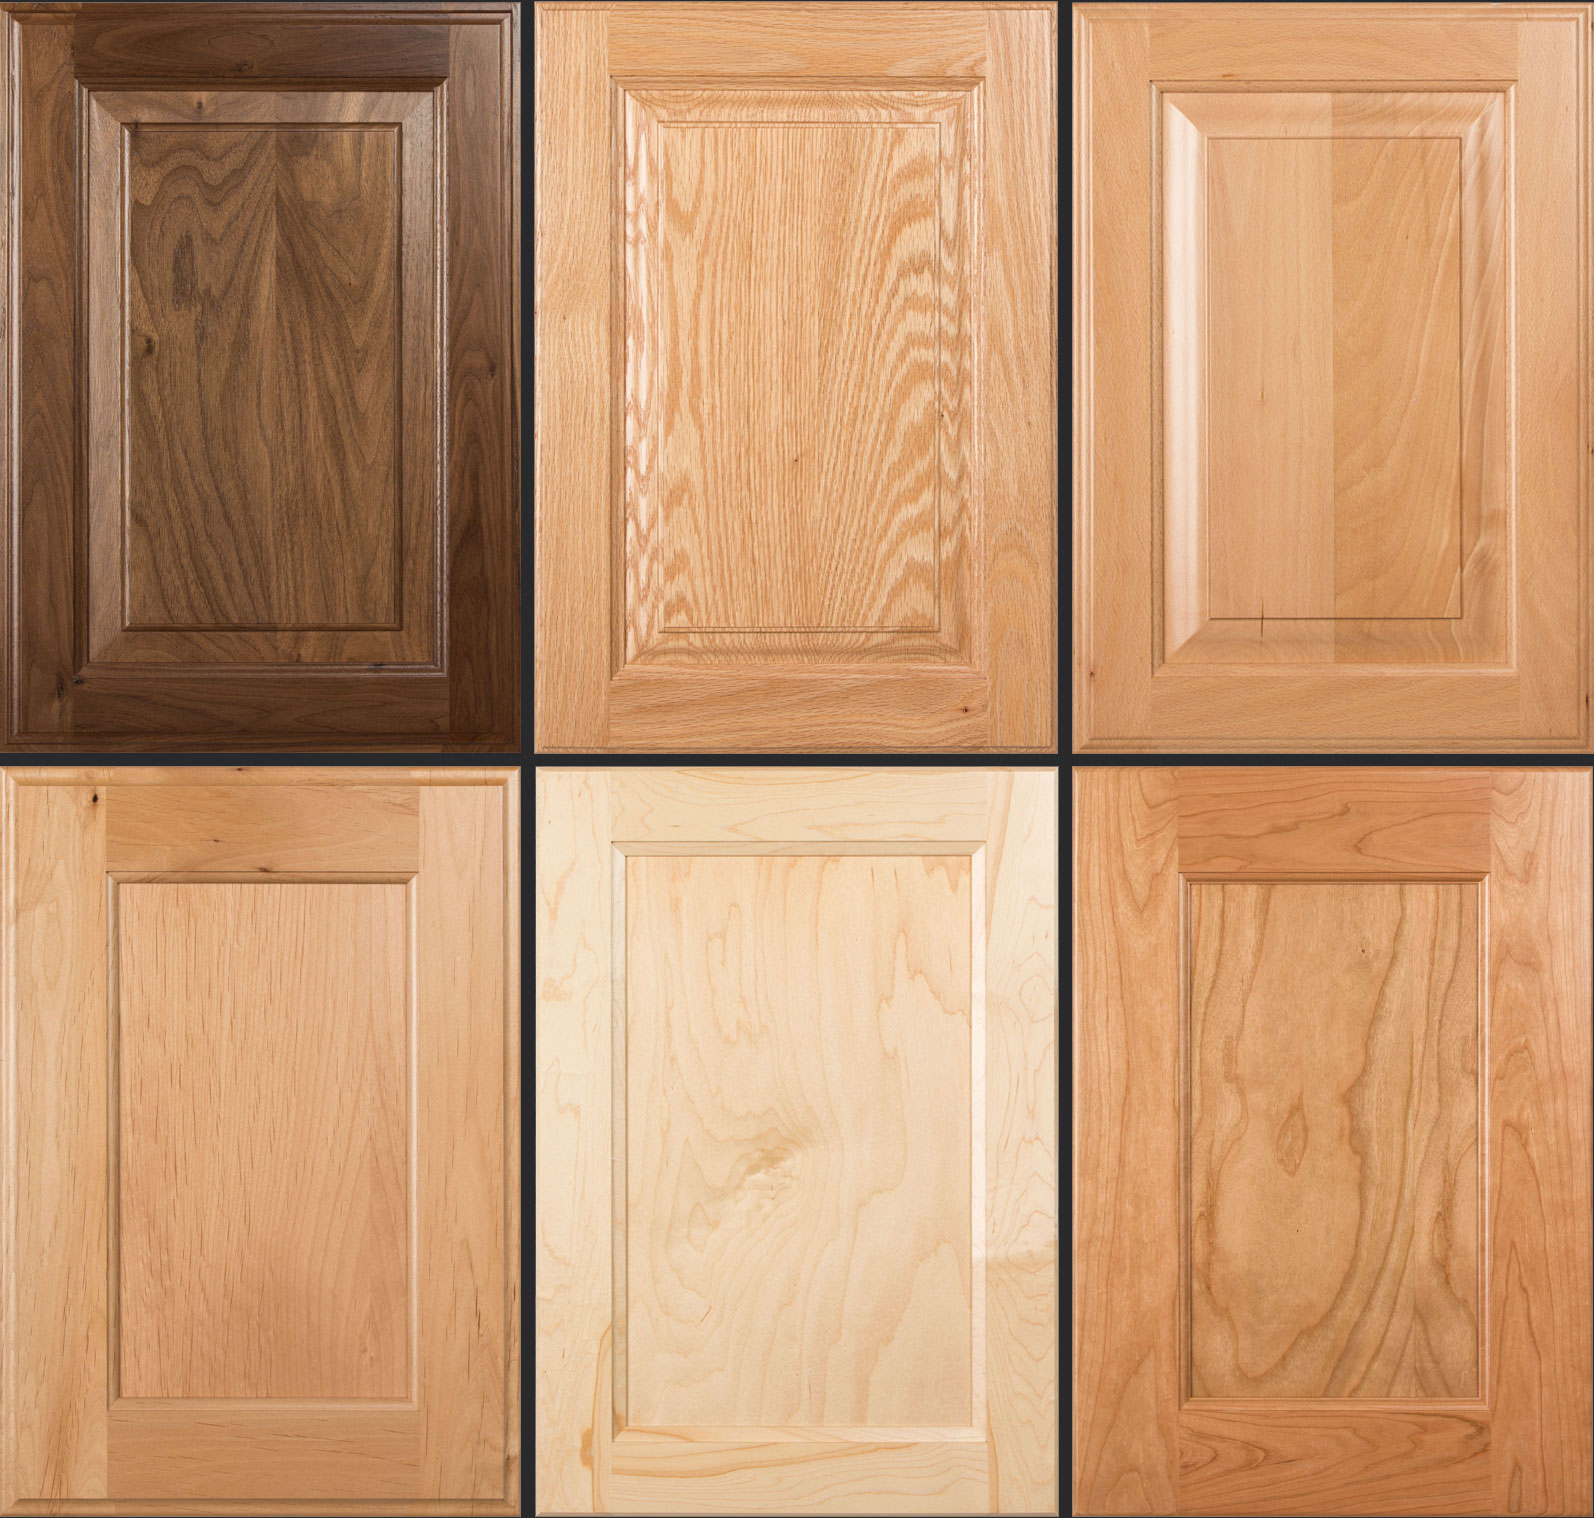 New Cabinet Door Photos Taylorcraft Cabinet Door Company